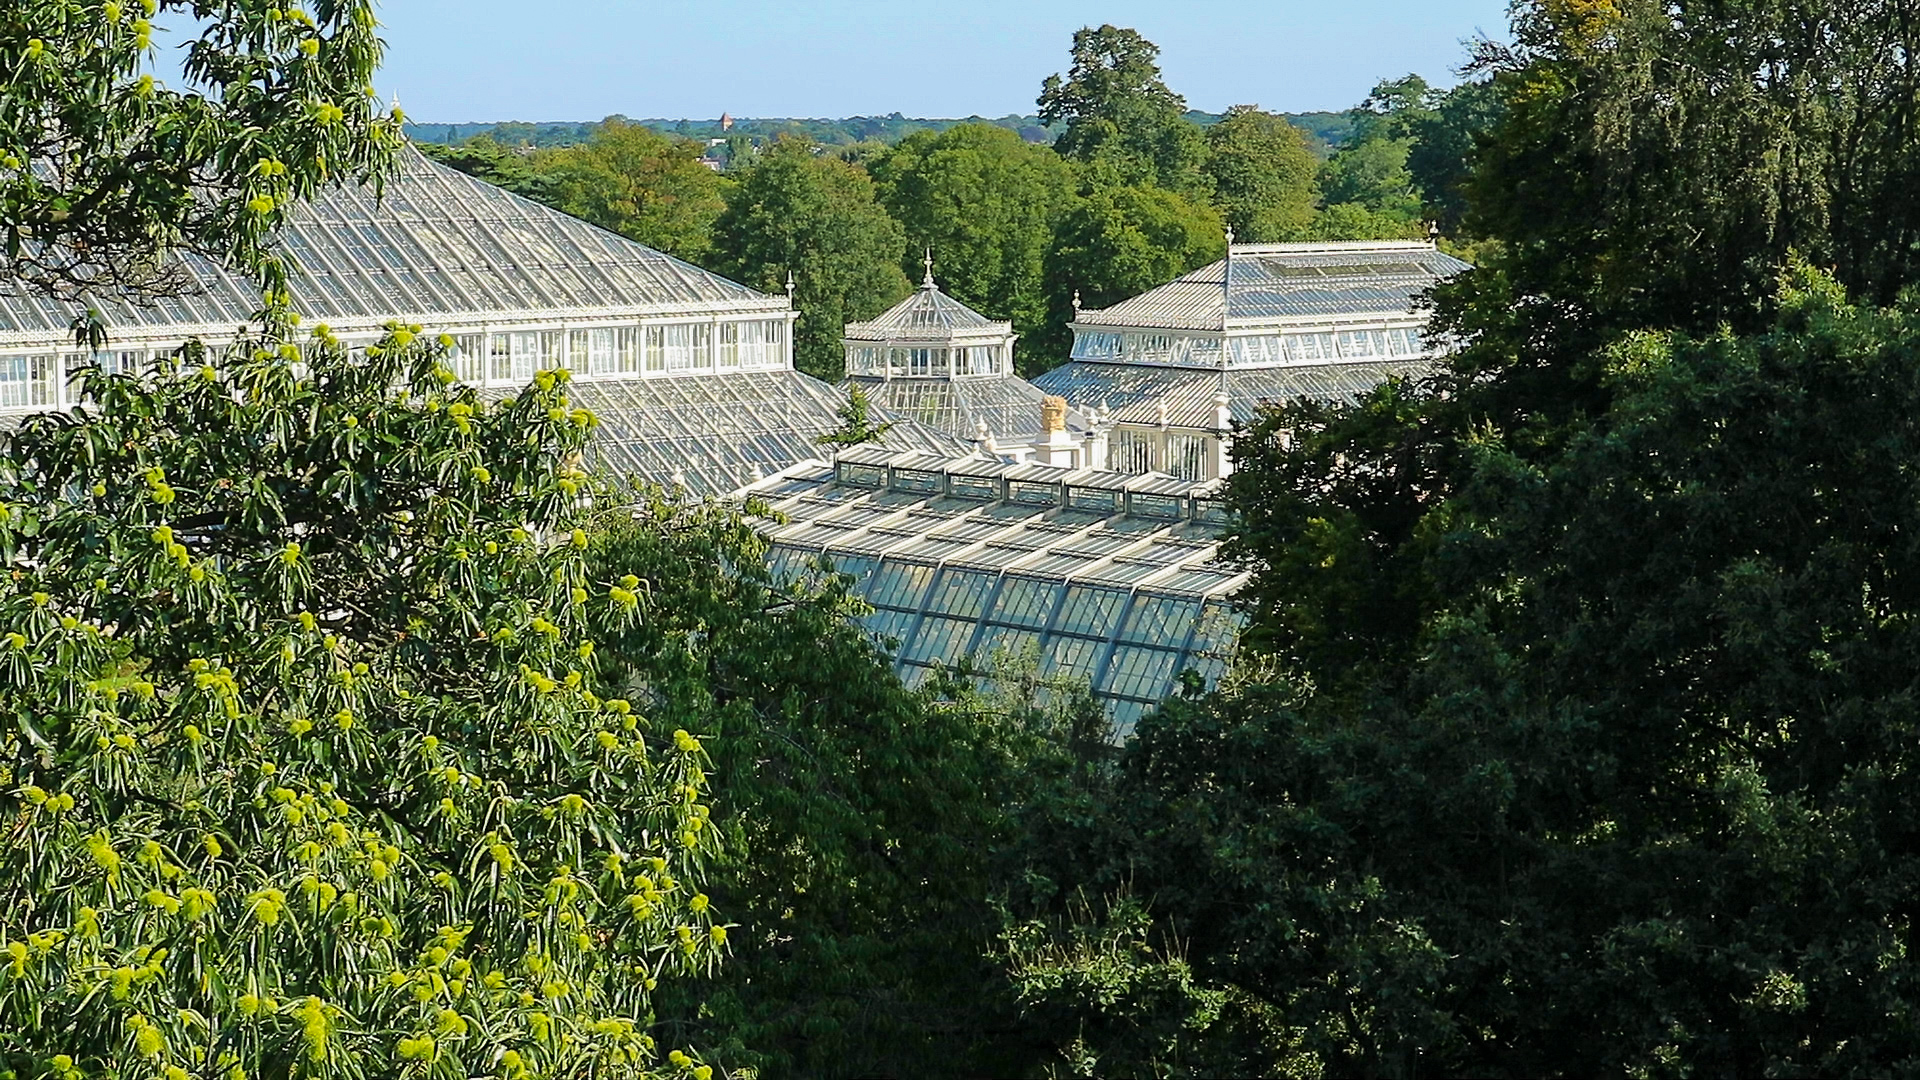 Trees and a building viewers from the top of the Treetop Walkway in royal botanical gardens in Kew London